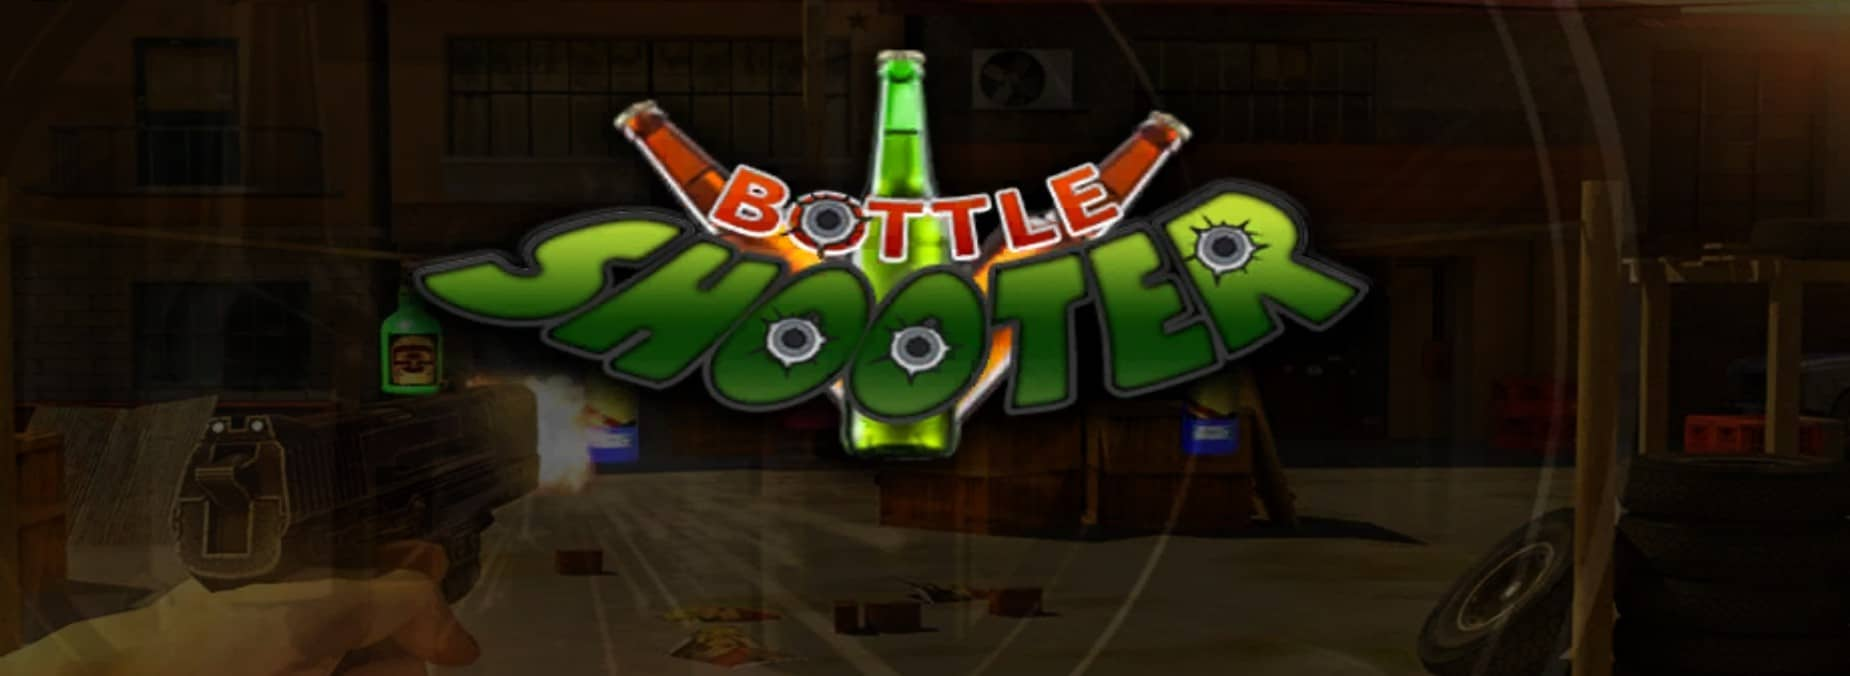 Download Real Bottle Shooter Game APK – for Android 3